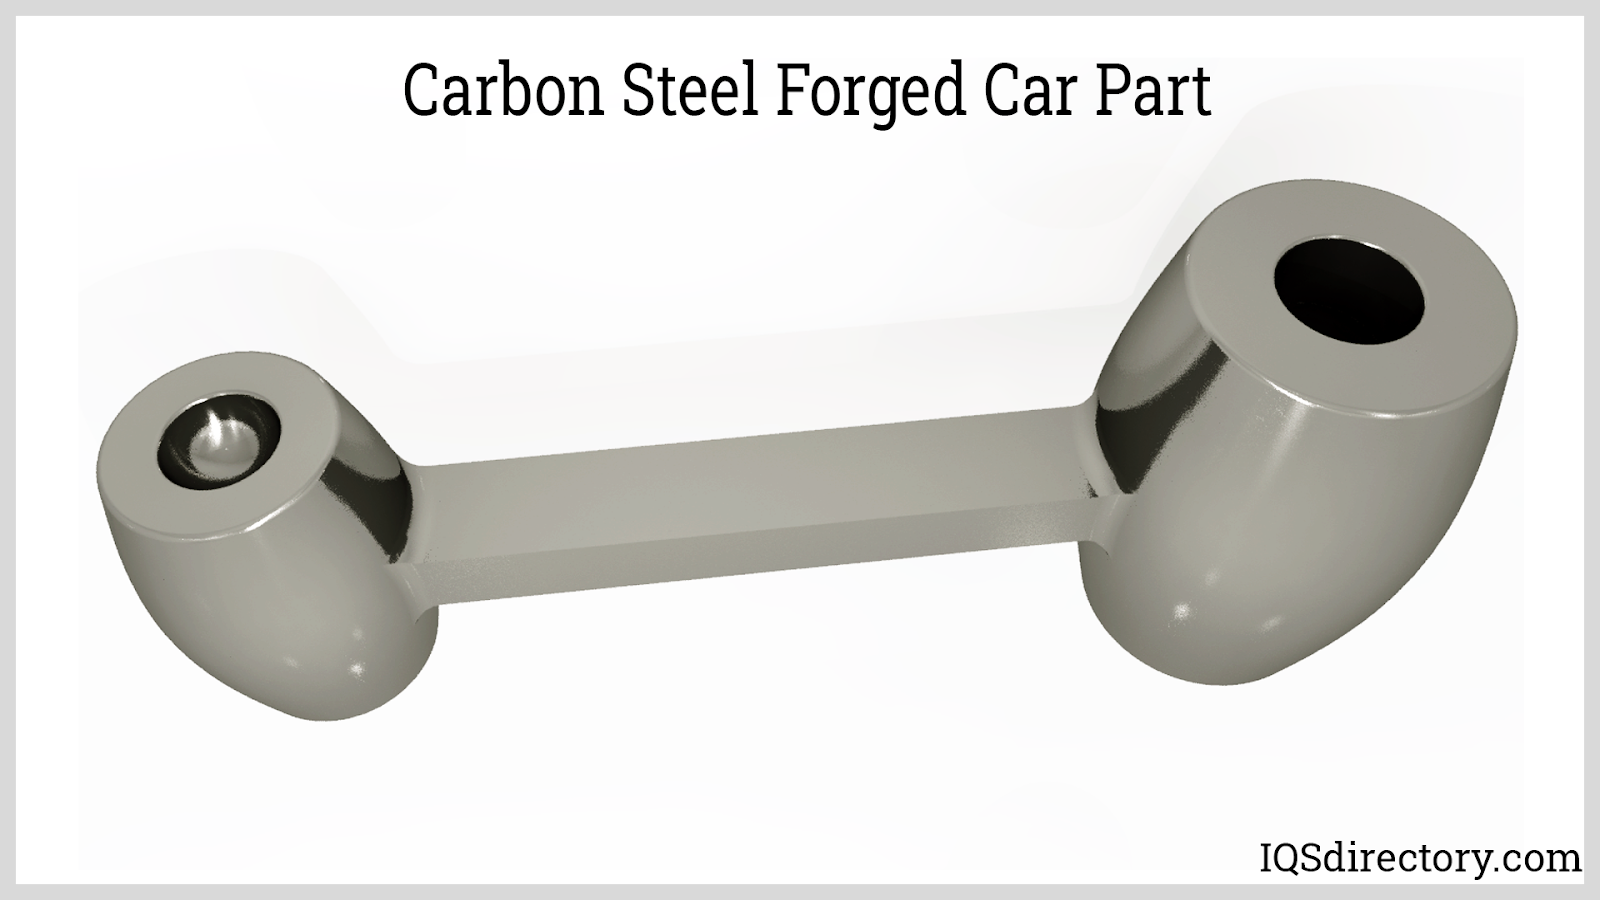 Carbon Steel Forged Car Part